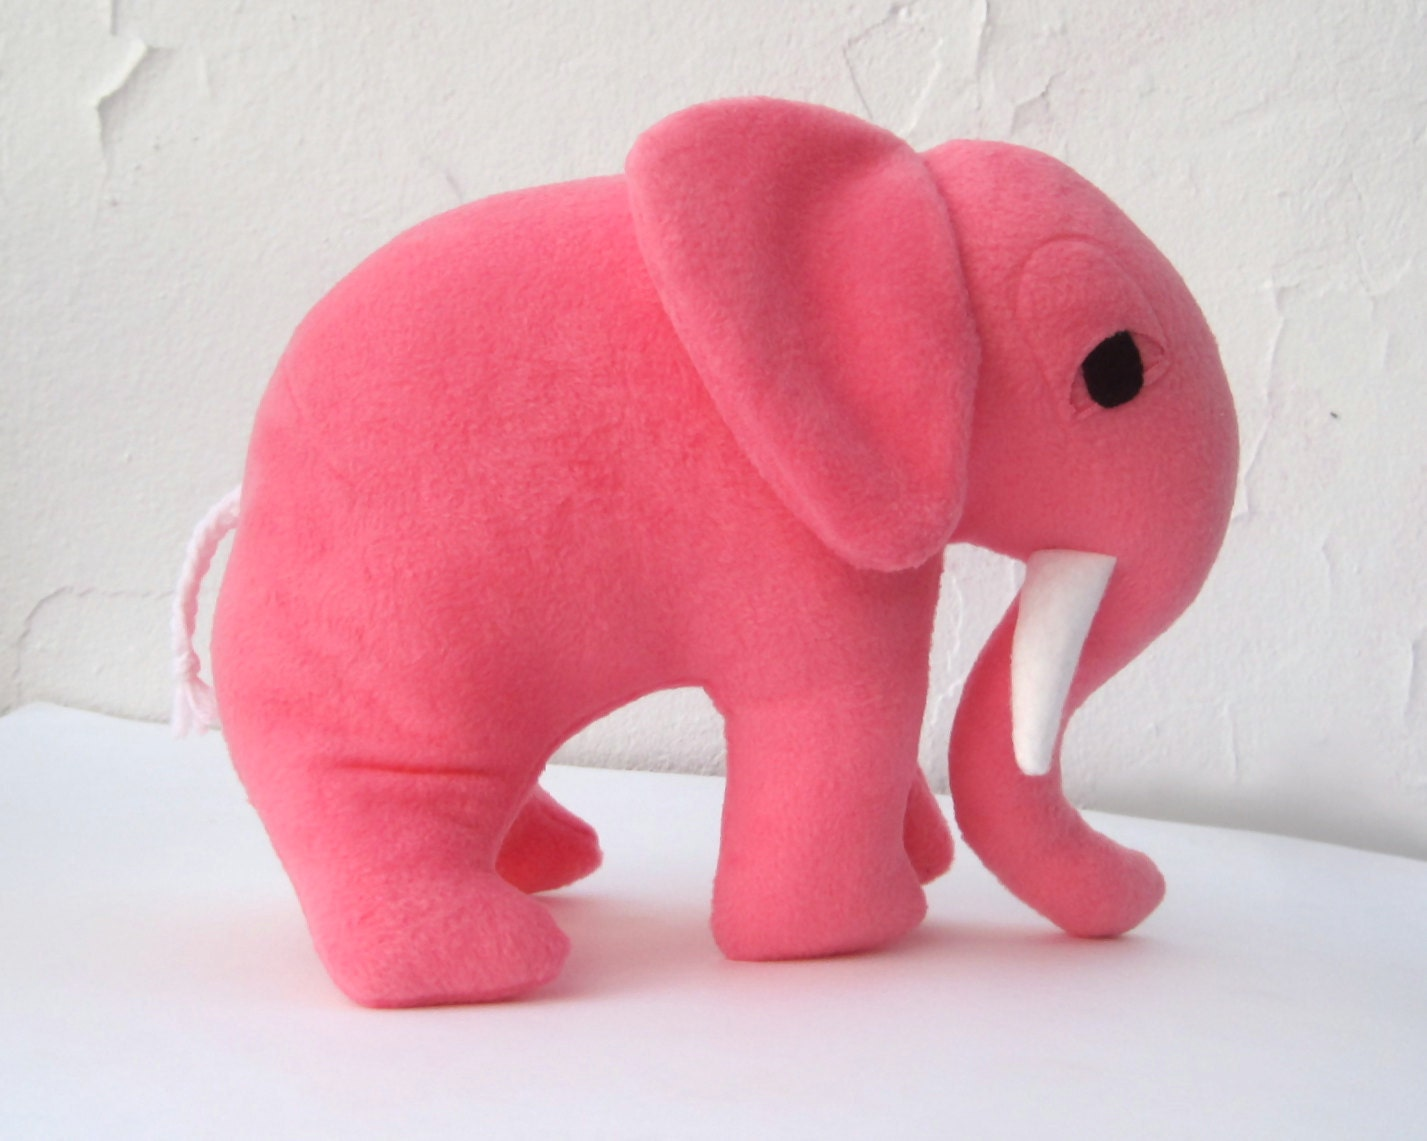 giant elephant toy stuffed animal in sweet pink petaluma the. Black Bedroom Furniture Sets. Home Design Ideas